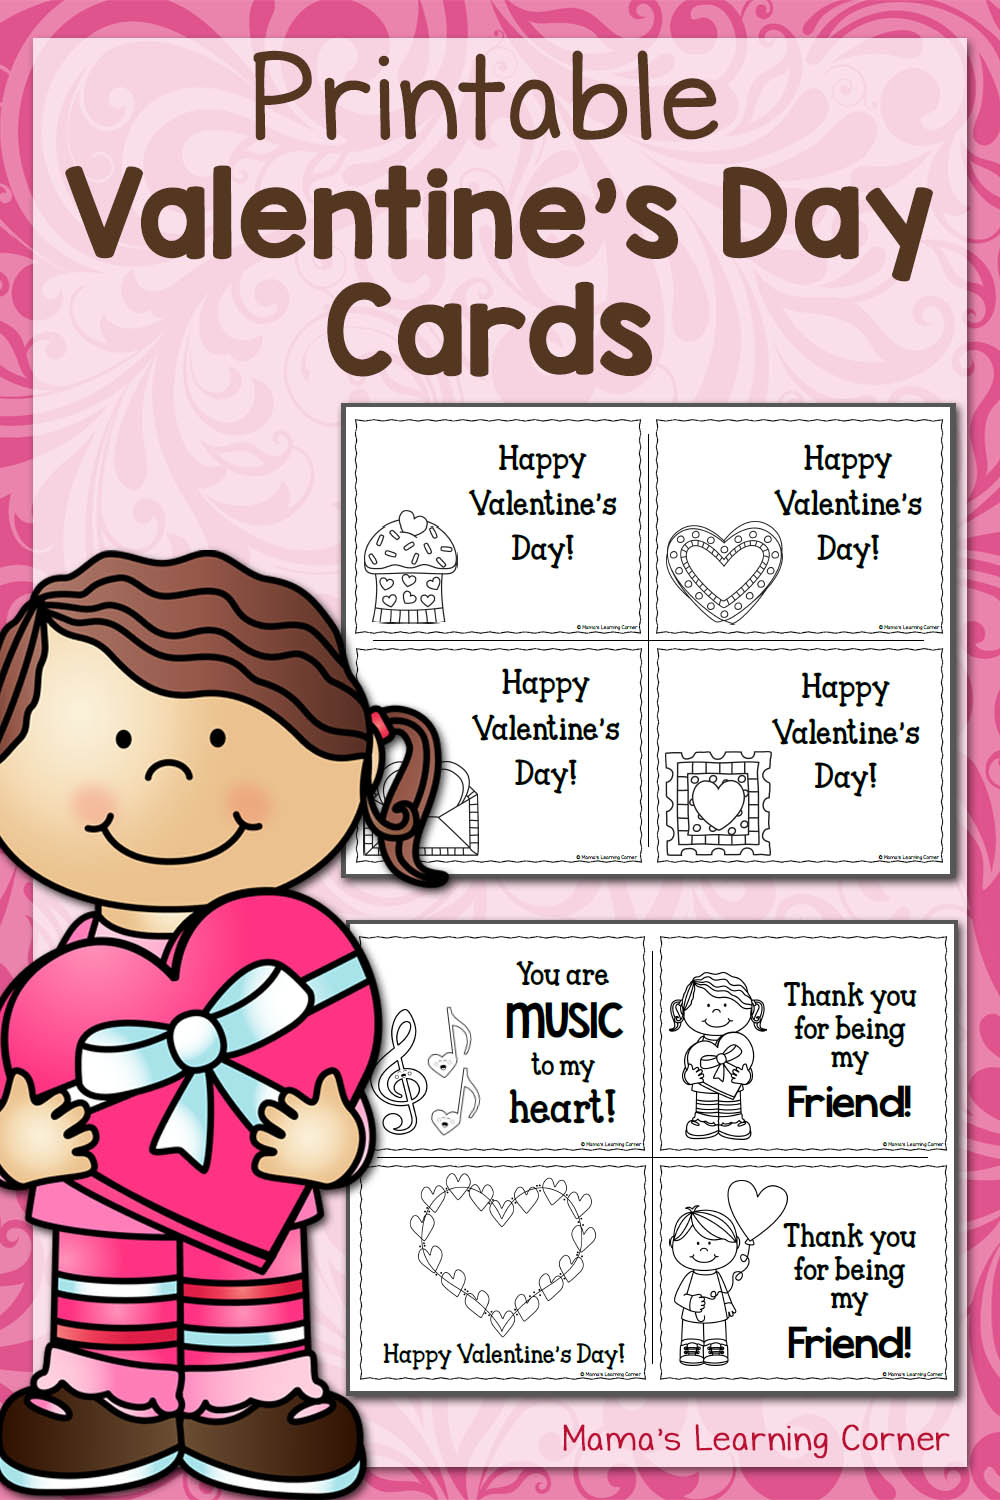 Printable Valentine's Day Cards - Mamas Learning Corner - Free Printable Valentines Day Cards For Kids